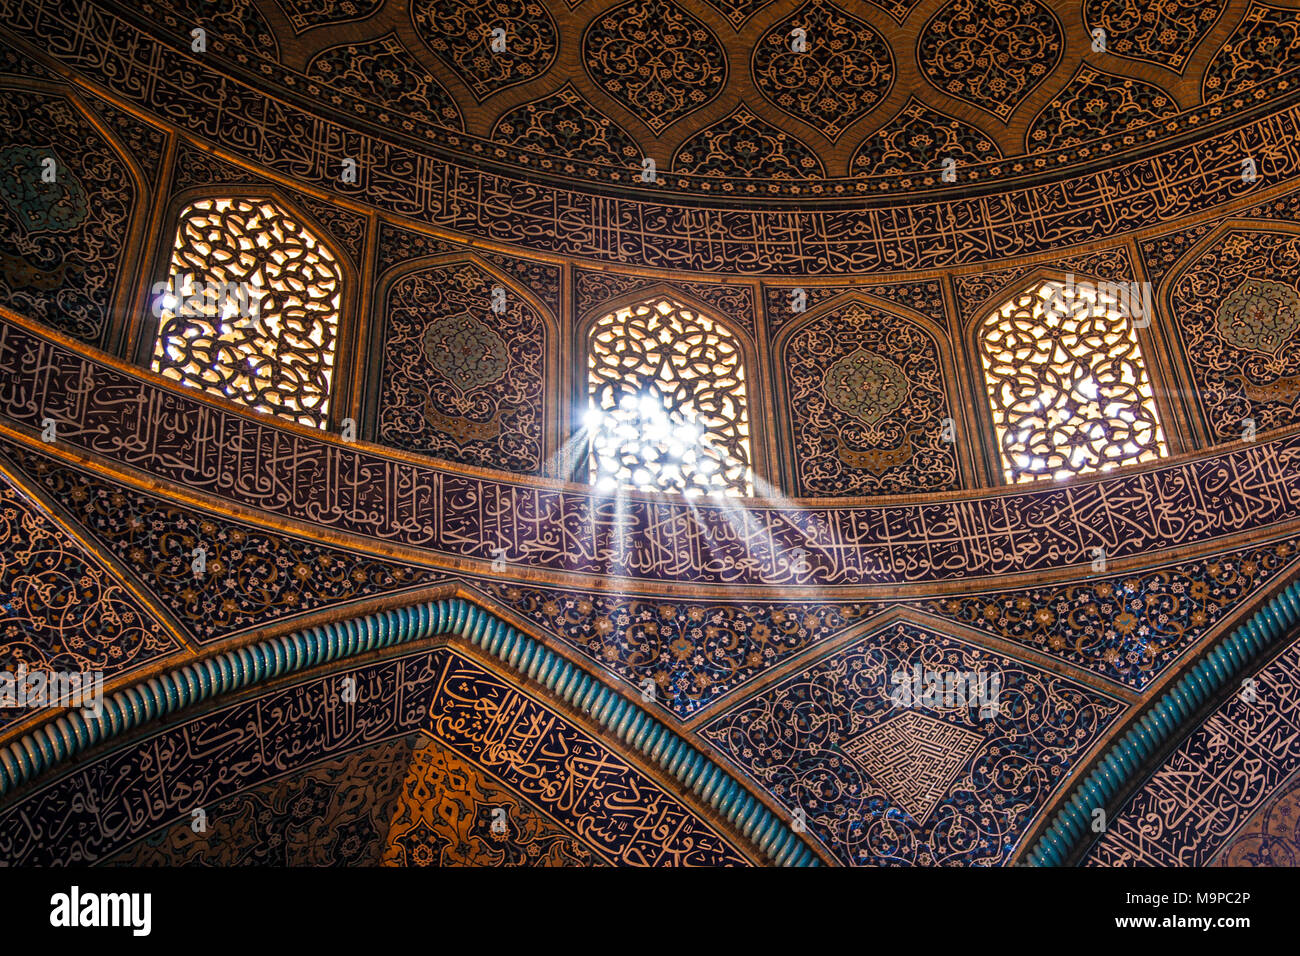 Light shines through window, dome, Jameh Mosque of Isfahan, Isfahan, Iran - Stock Image